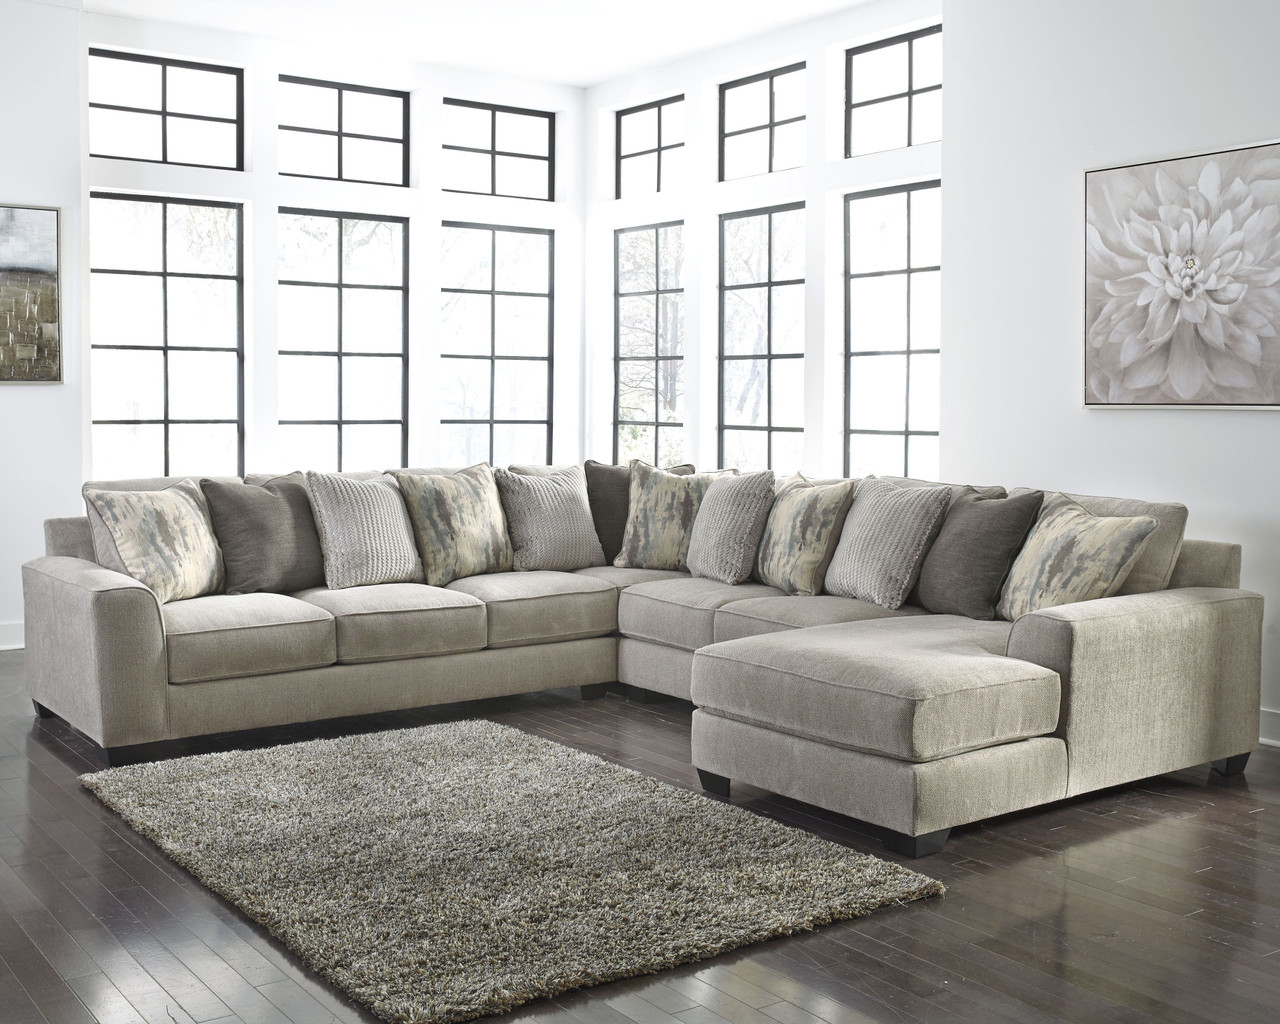 Amazing Ashley Ardsley Pewter Laf Sofa Couch Wedge Armless Loveseat Raf Corner Chaise Sectional Unemploymentrelief Wooden Chair Designs For Living Room Unemploymentrelieforg